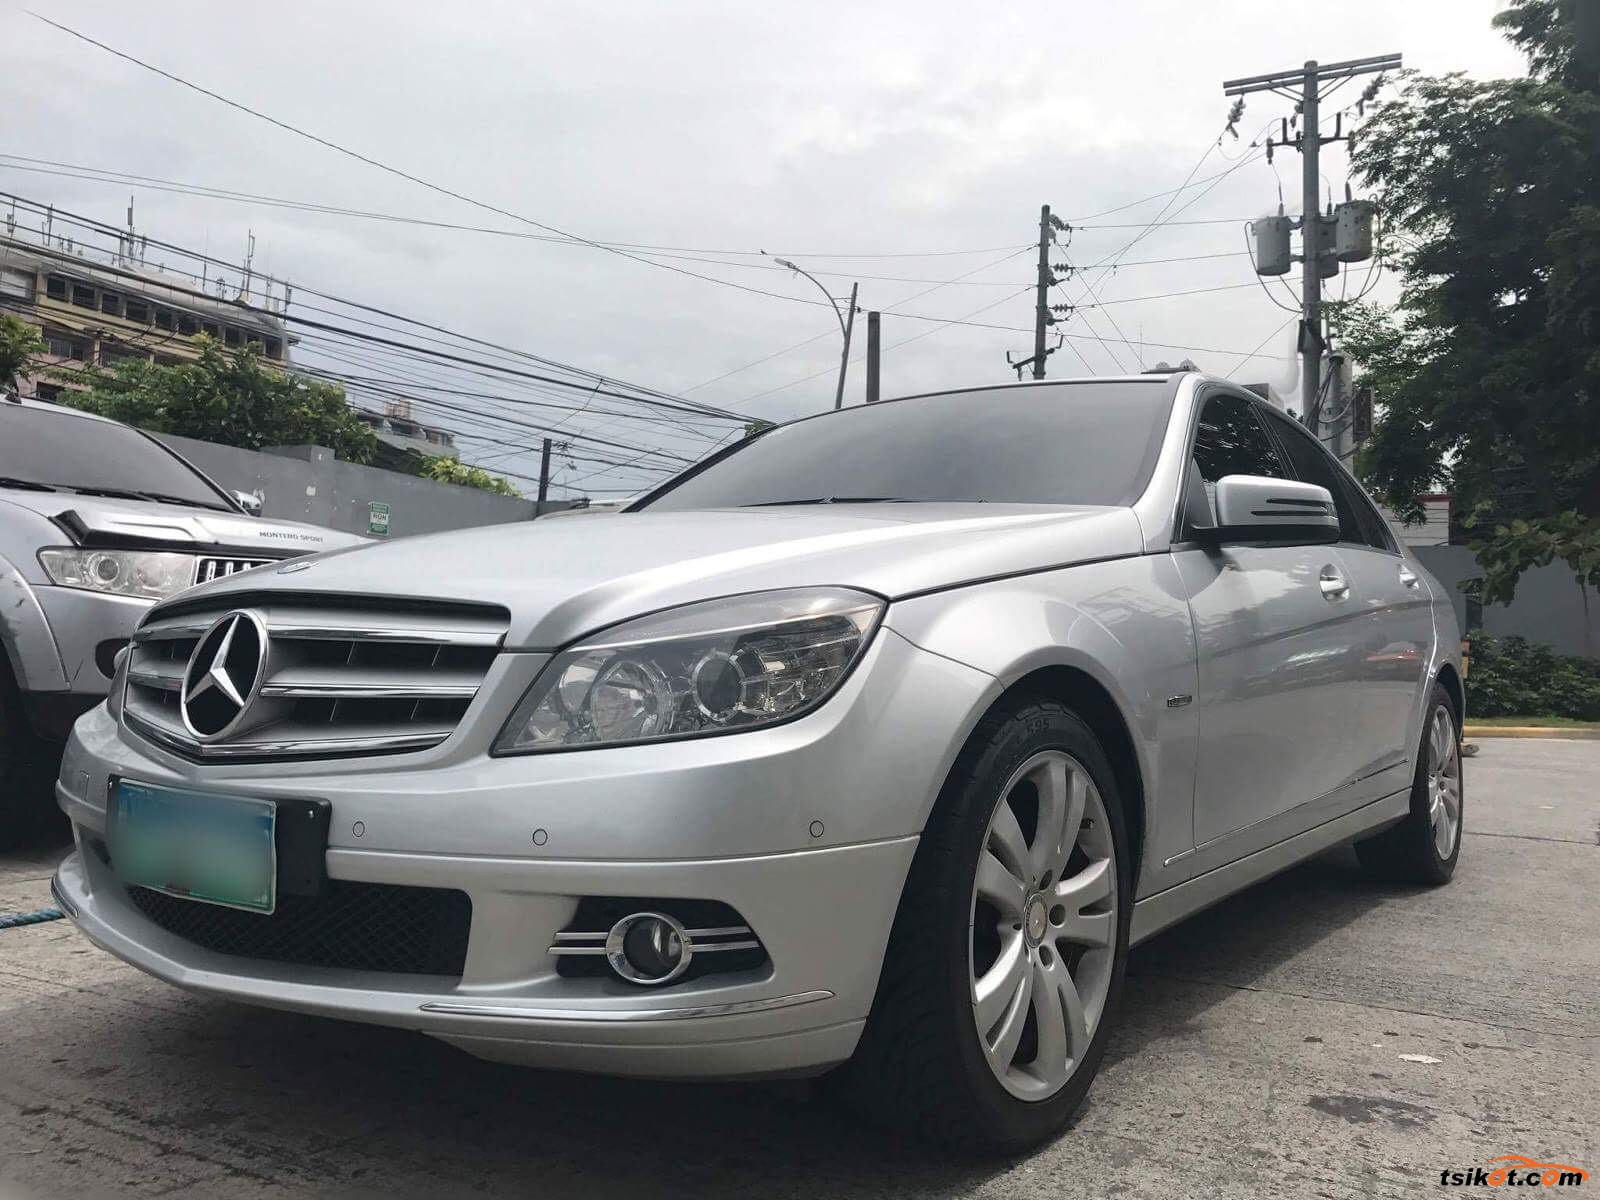 mercedes benz c class 2010 car for sale metro manila. Black Bedroom Furniture Sets. Home Design Ideas